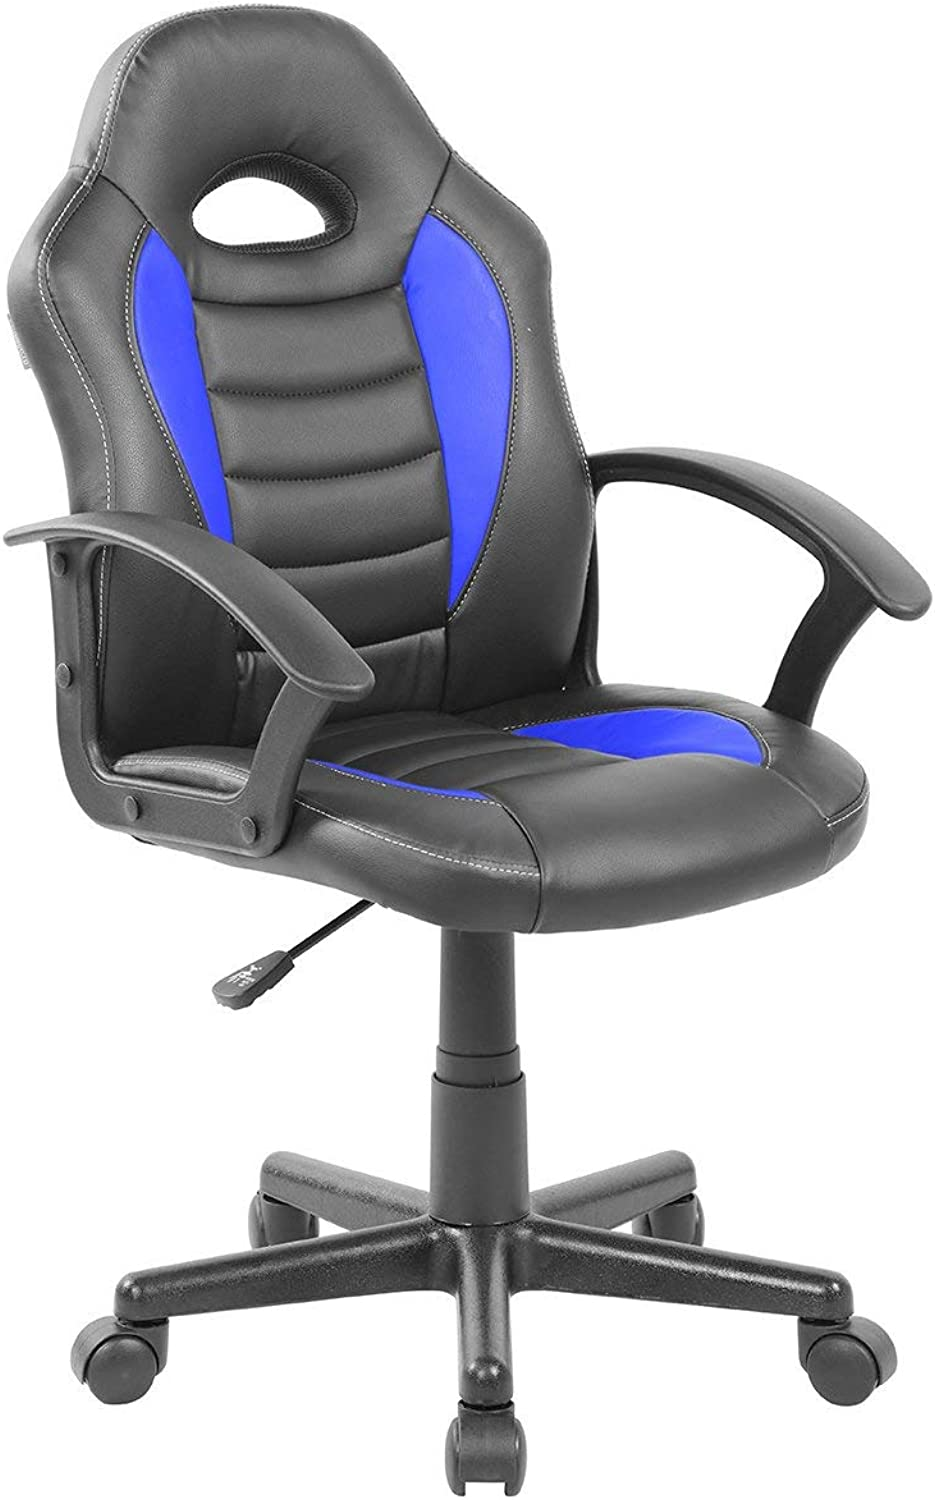 Techni Mobili RTA-KS40-BL Kid's Gaming and Student Racer Chair with Wheels, bluee